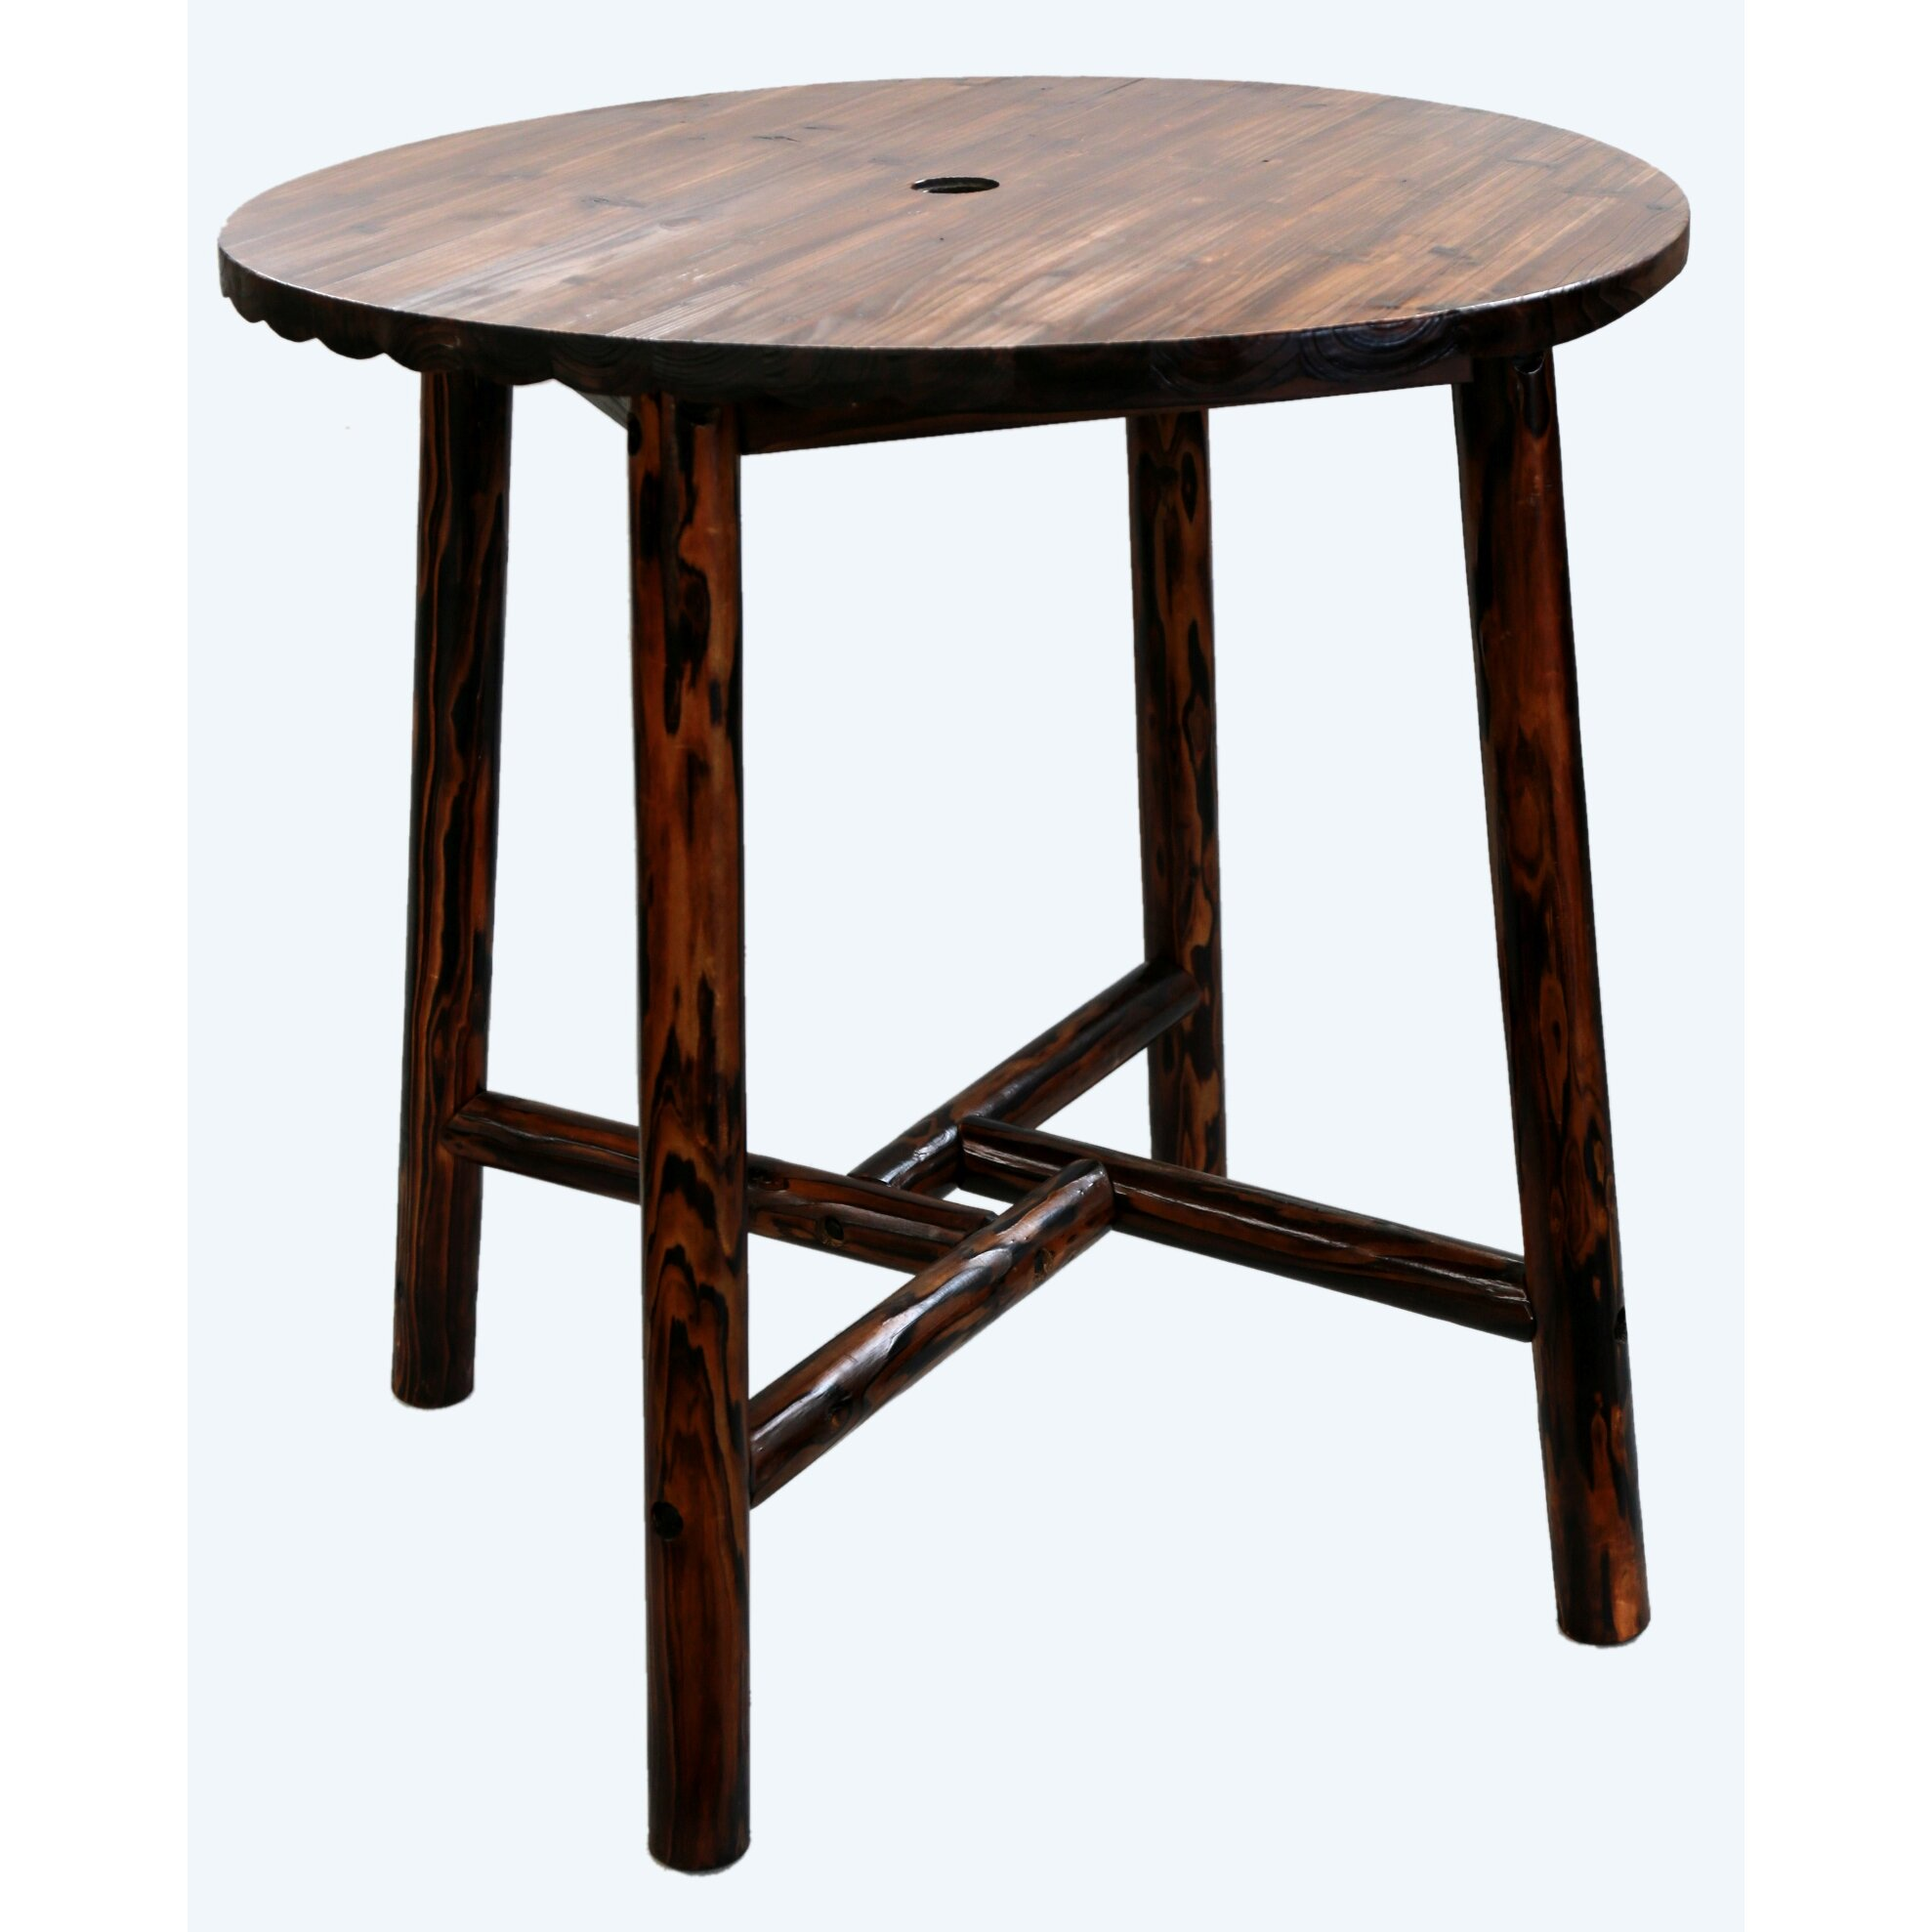 LeighCountry Char-Log Round Bar Table II & Reviews  Wayfair